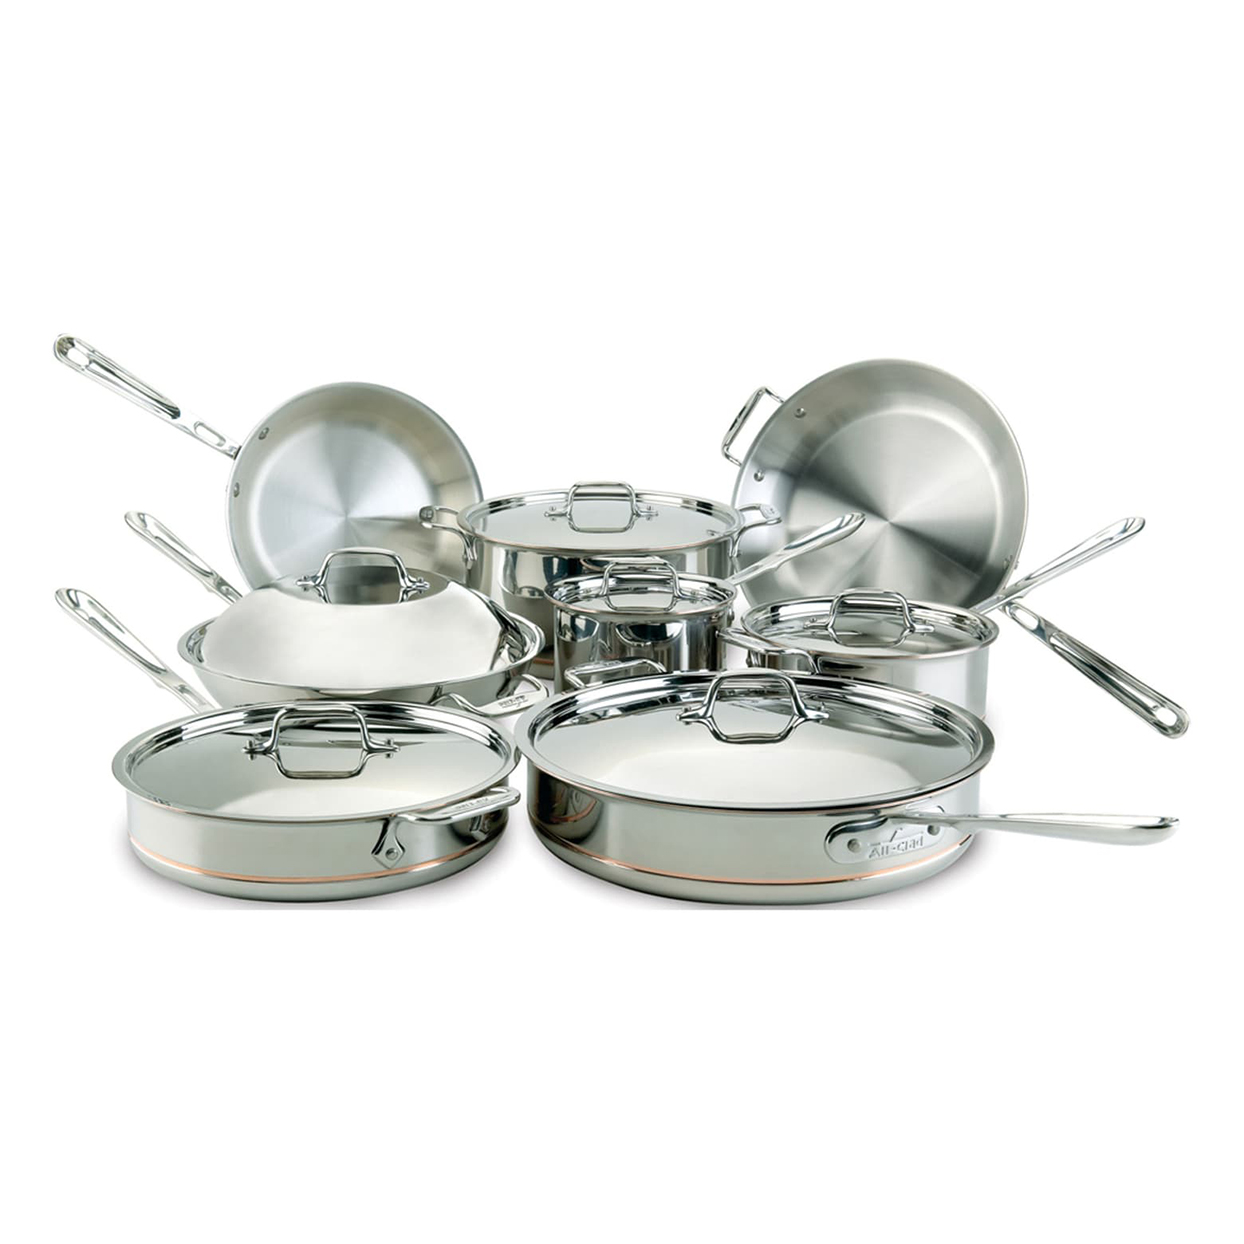 All-Clad 14-Piece Copper Core Stainless Steel Set